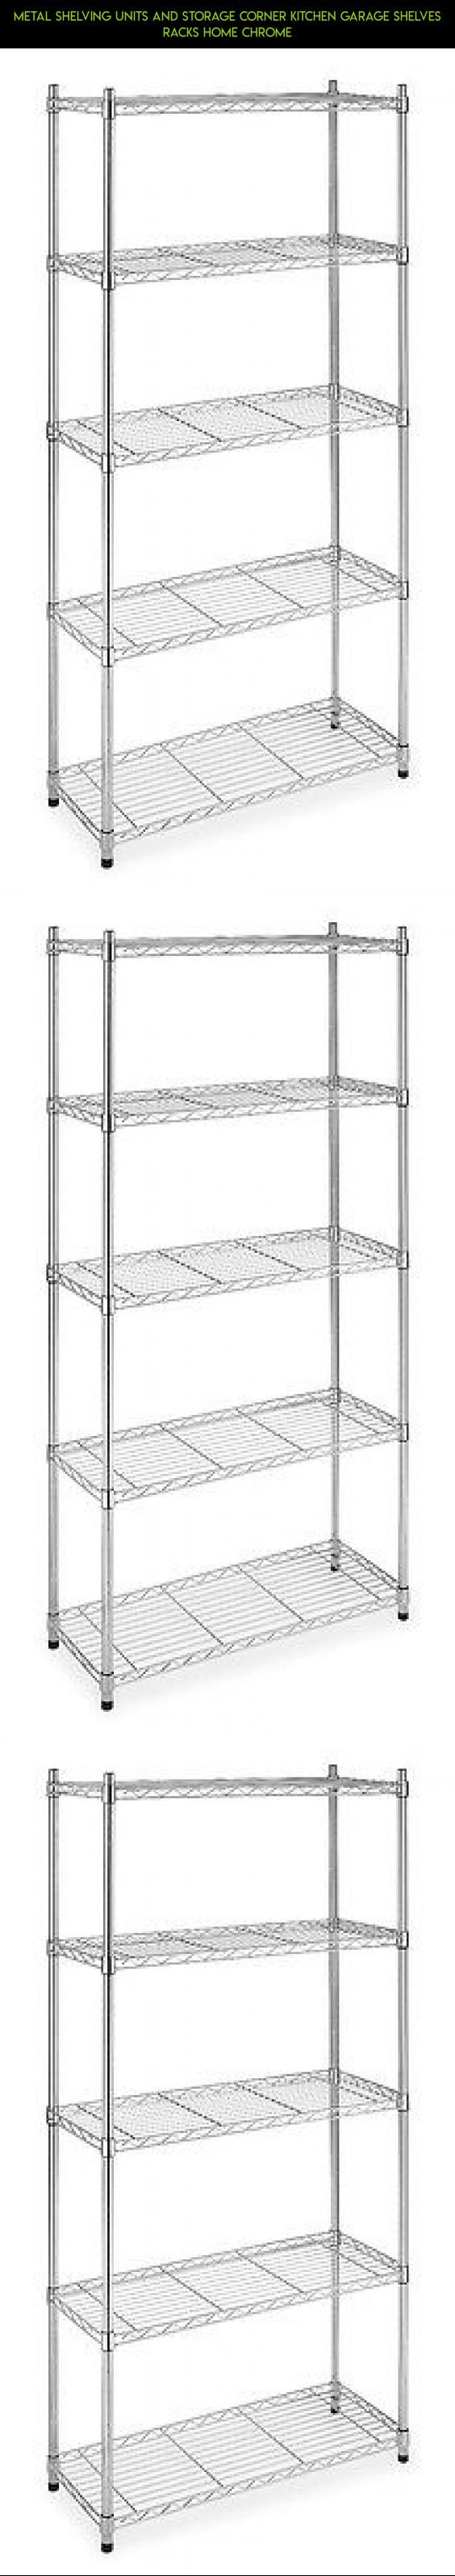 Best 25+ Metal shelving units ideas on Pinterest | Metal shelving ...